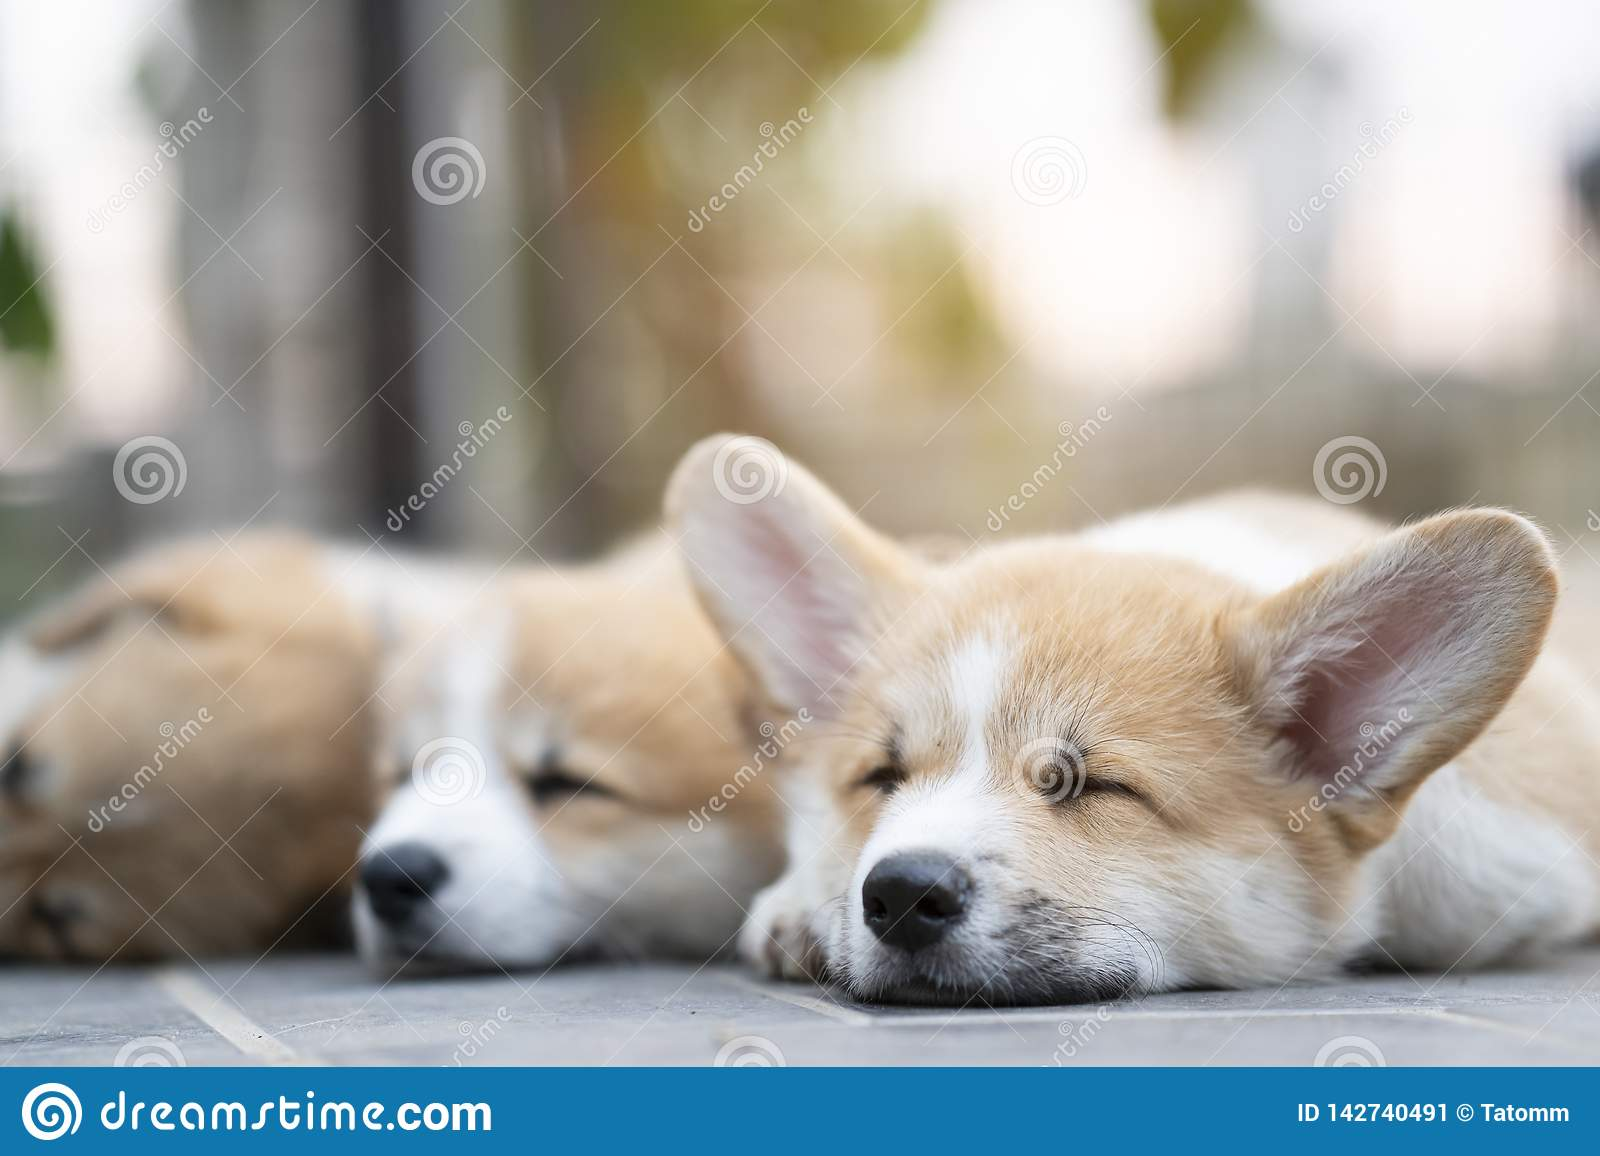 Cute Corgi Puppies Baby Dogs Lying Relaxing And Sleeping In Summer Sunny Day Stock Image Image Of Happy Close 142740491